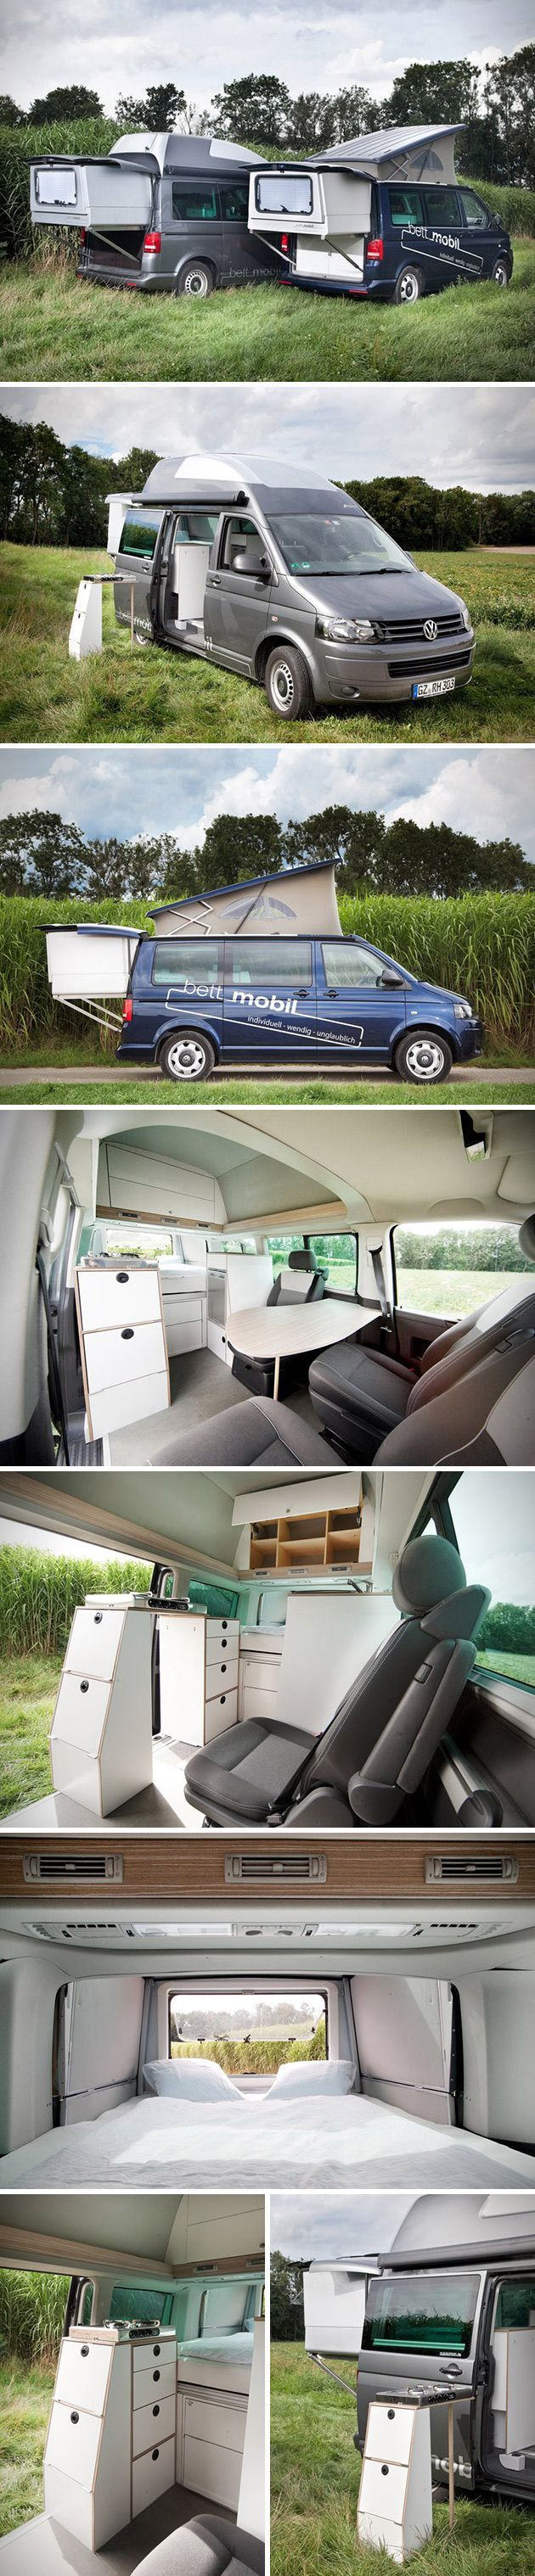 No T3 but also a nice VW camper. The Bett Mobil is a smartly designed add-on…